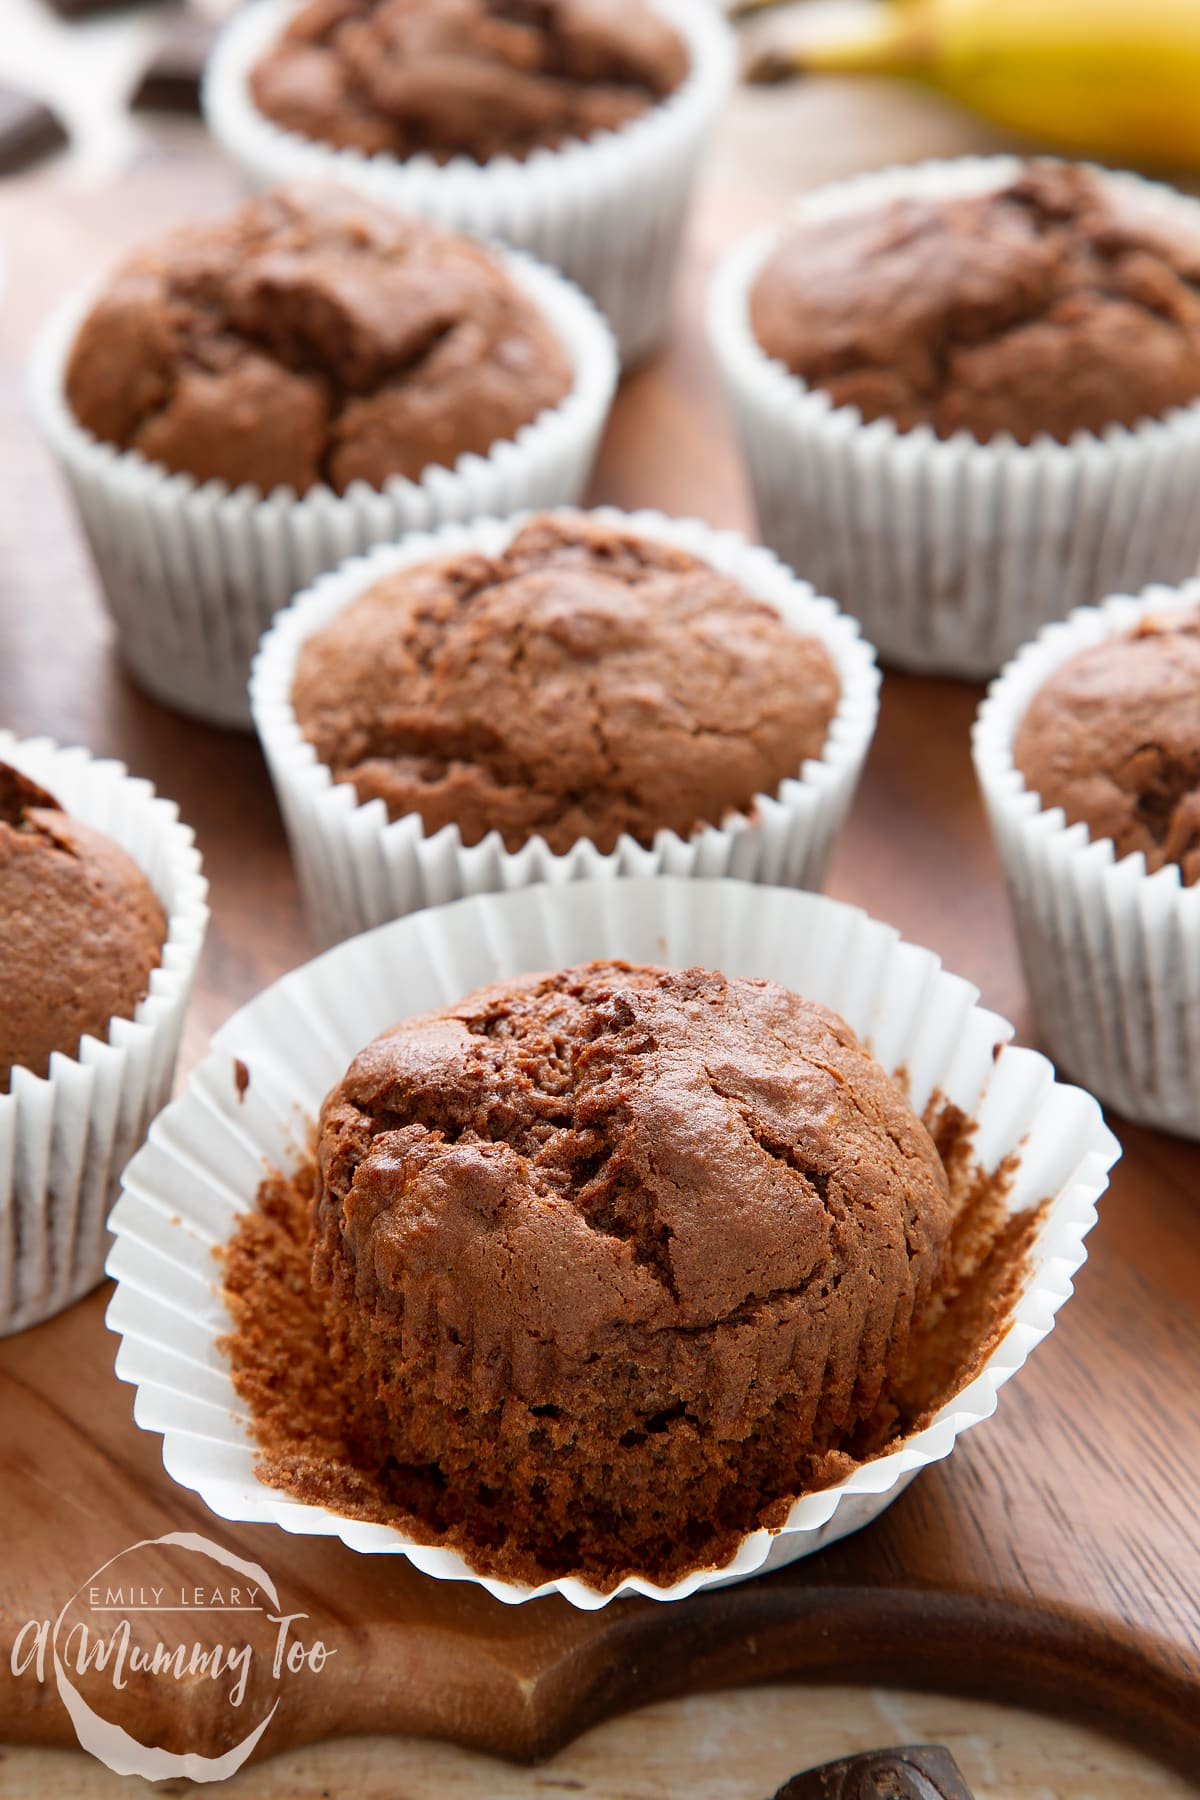 Front angle shot of banana and chocolate muffins with opened muffin cases served in a wooden plate